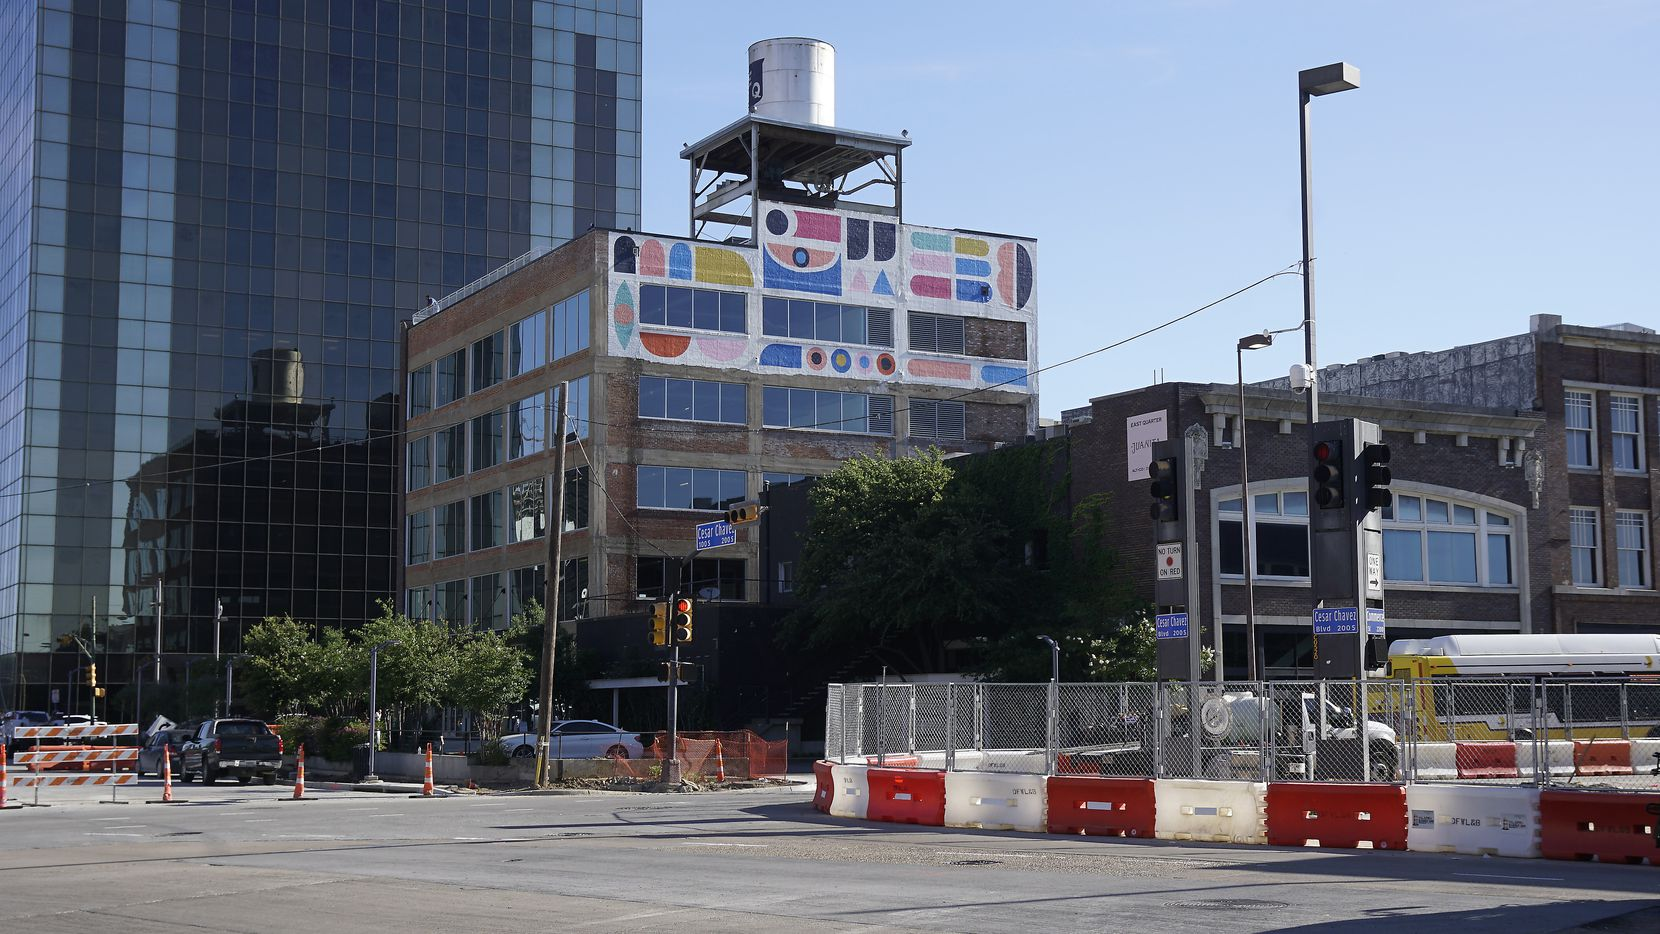 Artist Kyle Steed's art graces the back of a building being renovated at 2200 Main St. in downtown Dallas.